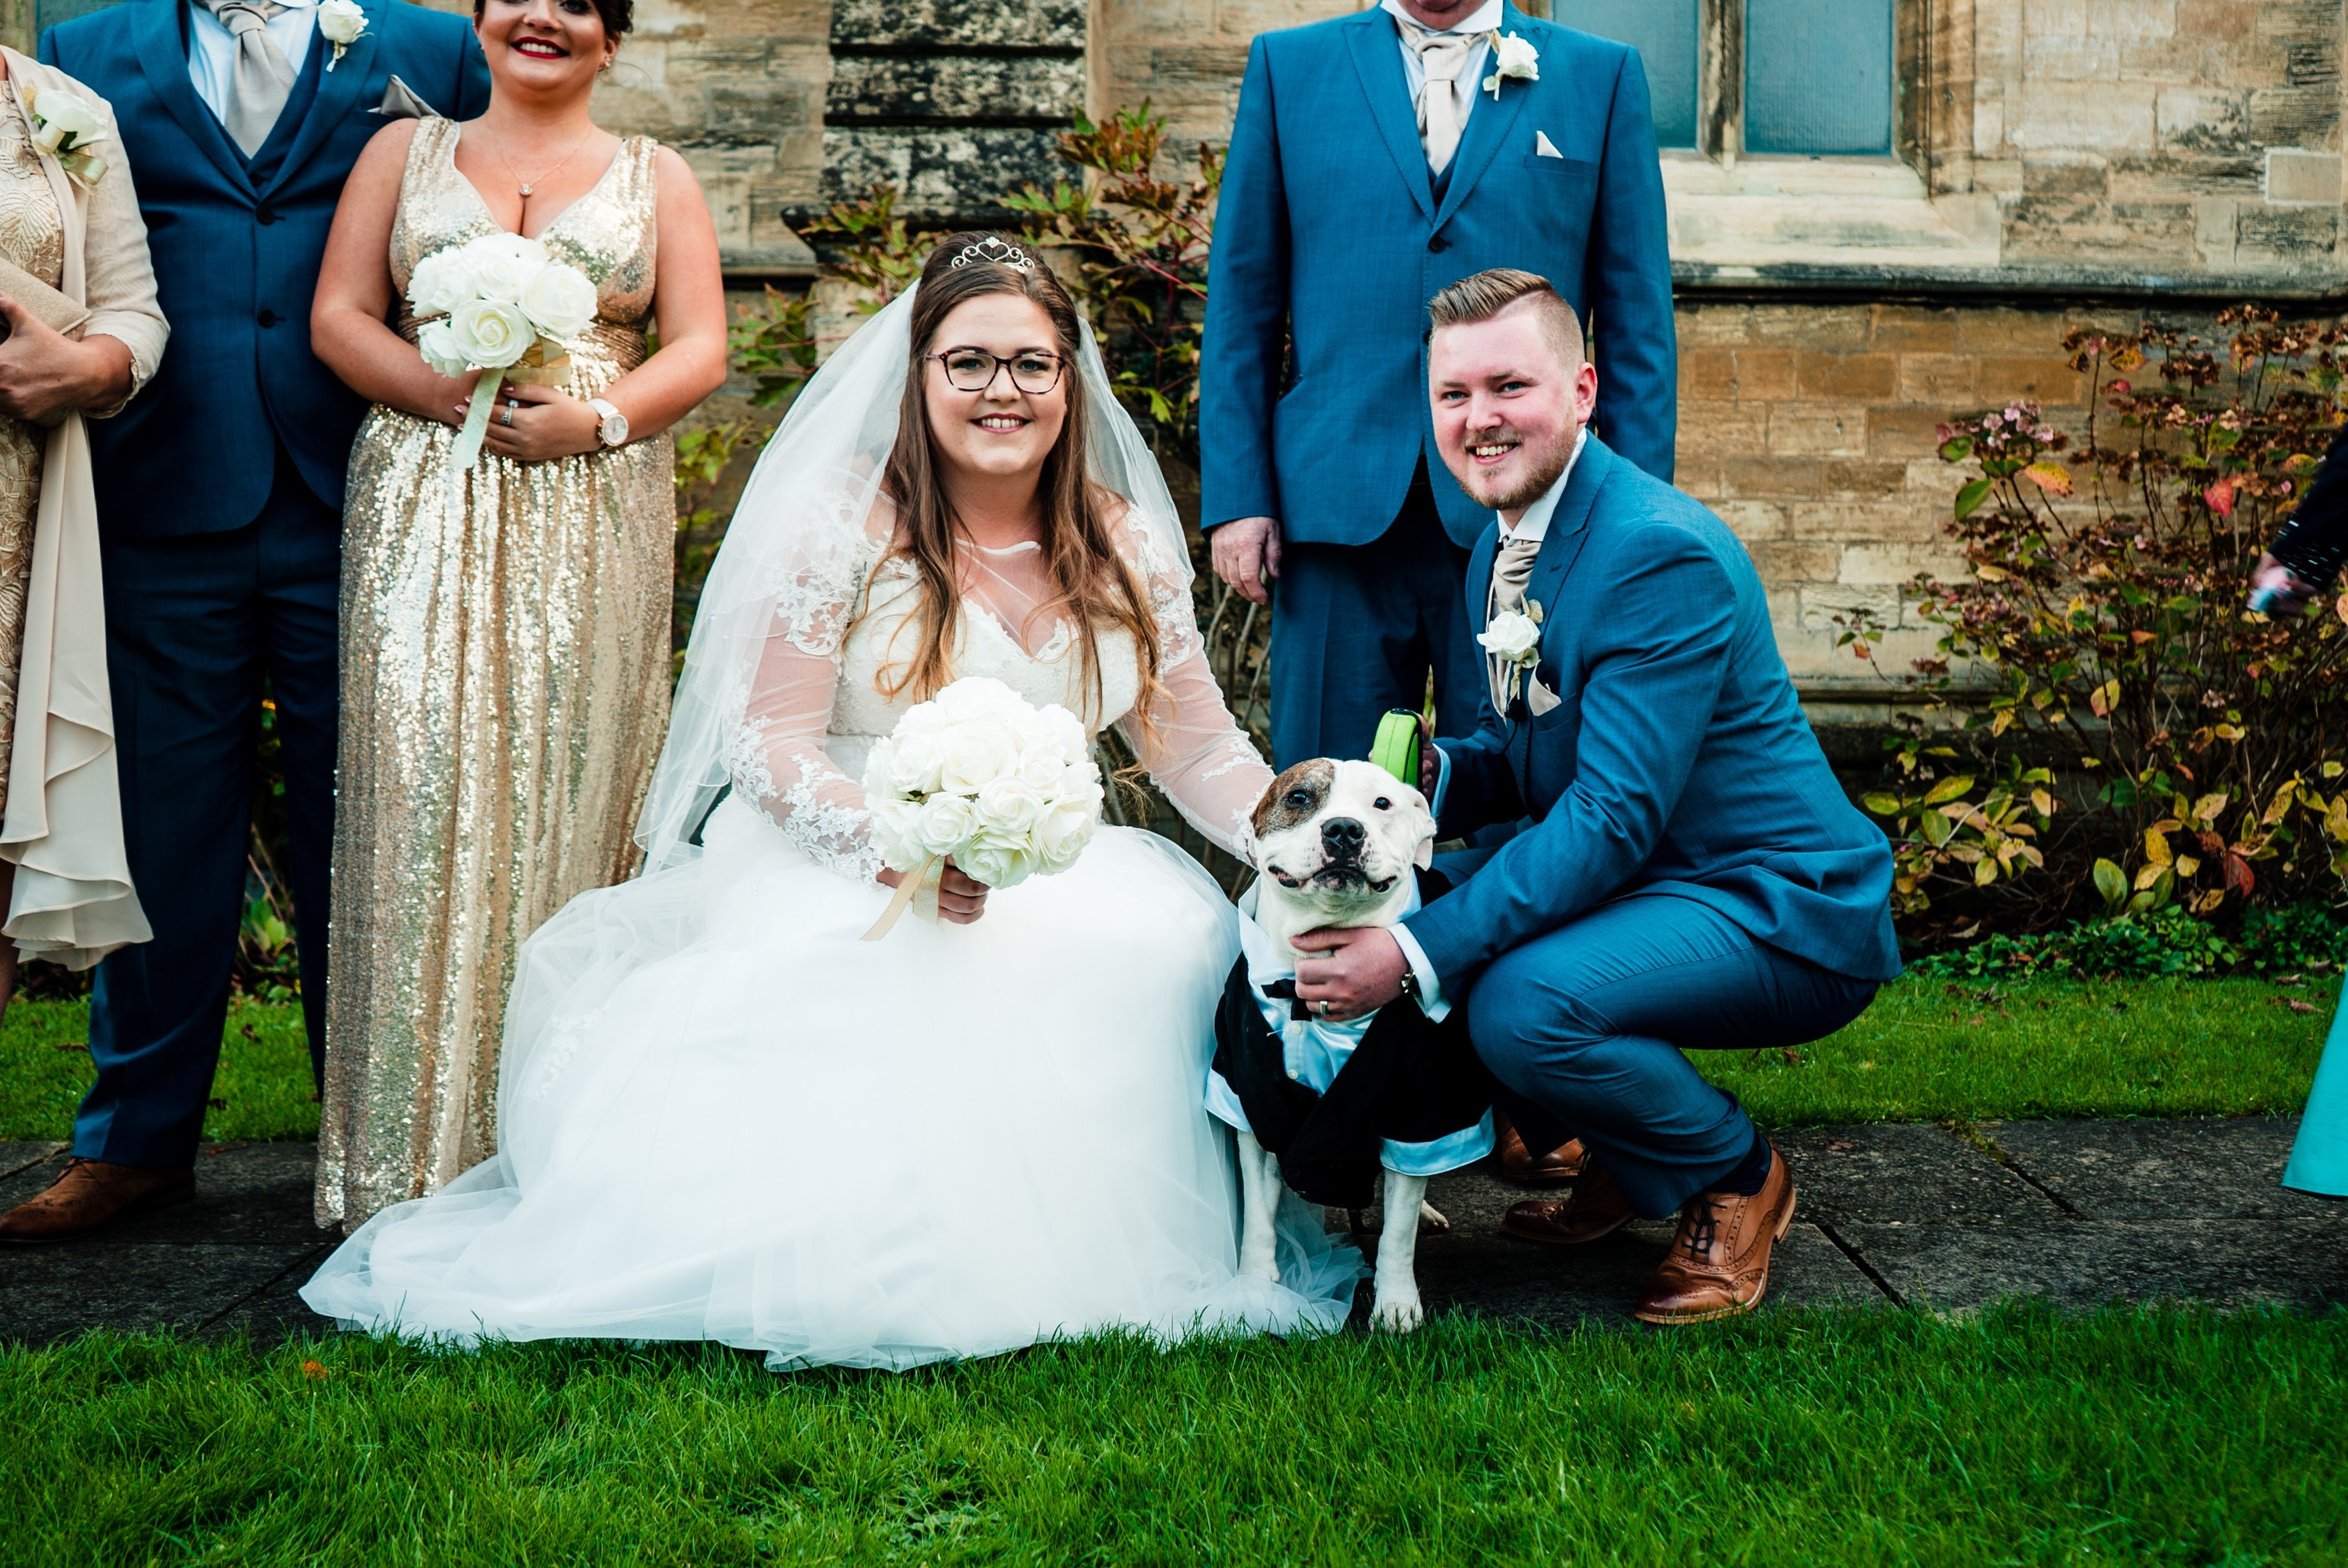 Wedding Photos with their dog